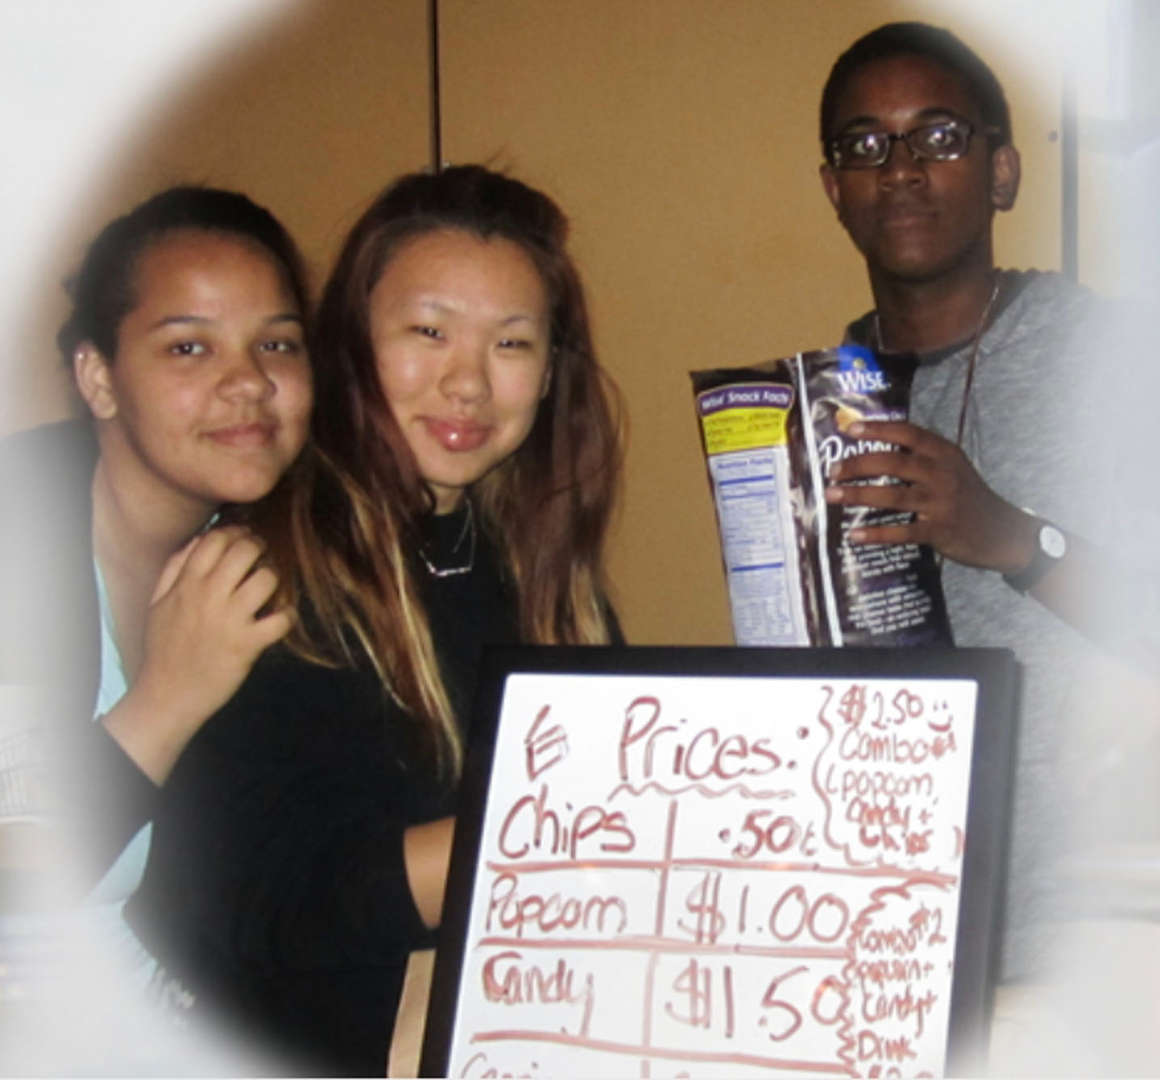 Students standing next to a white board menu